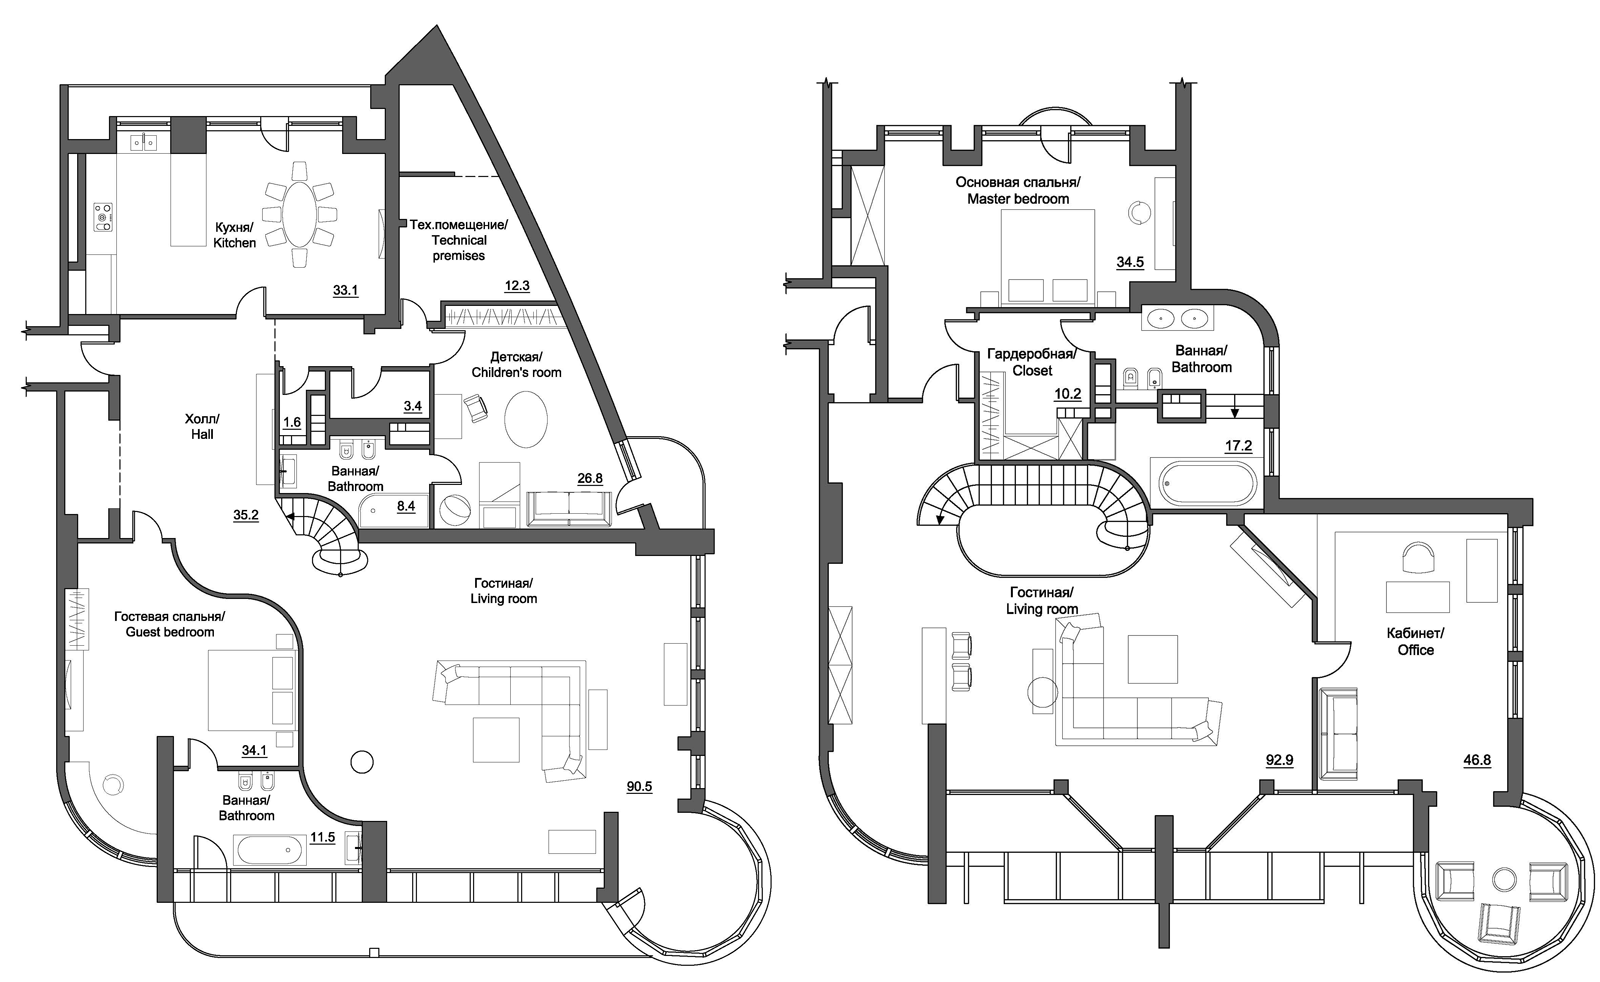 stunning apartment blueprints. penthouses for sale floor plans  Penthouse Apartment Floor Plans Luxury Apartments For Sale In Kiev